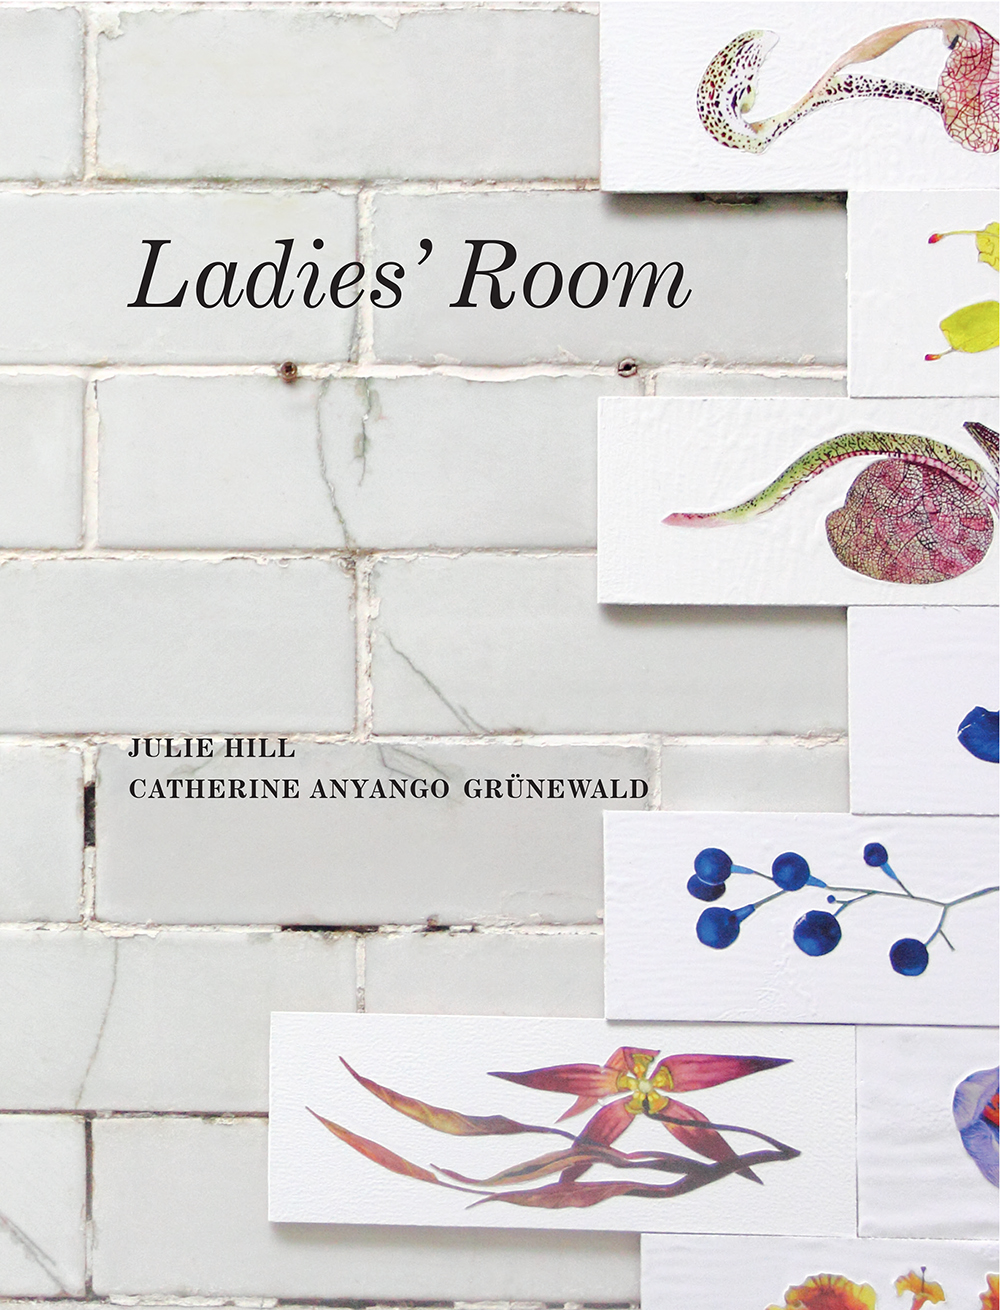 - Crying Out Loud: Ladies' Roomexhibition catalogueA site-specific exhibition at The Edwardian Cloakroom, Bristol by artists Julie Hill & Catherine Anyango Grünewald. Together their works in materials such as ceramics, cosmetics, smoke and mirrors usedthe context of the Edwardian Cloakroom as a mise-en-scène setting, drawing attention to the feminine experience as independent, both spatially and intellectually, from the Gents.Featuring essays by Dame Marina Warner, Nella Aarneand Dr Farrah Jarral.Read onlineBuy on Amazon